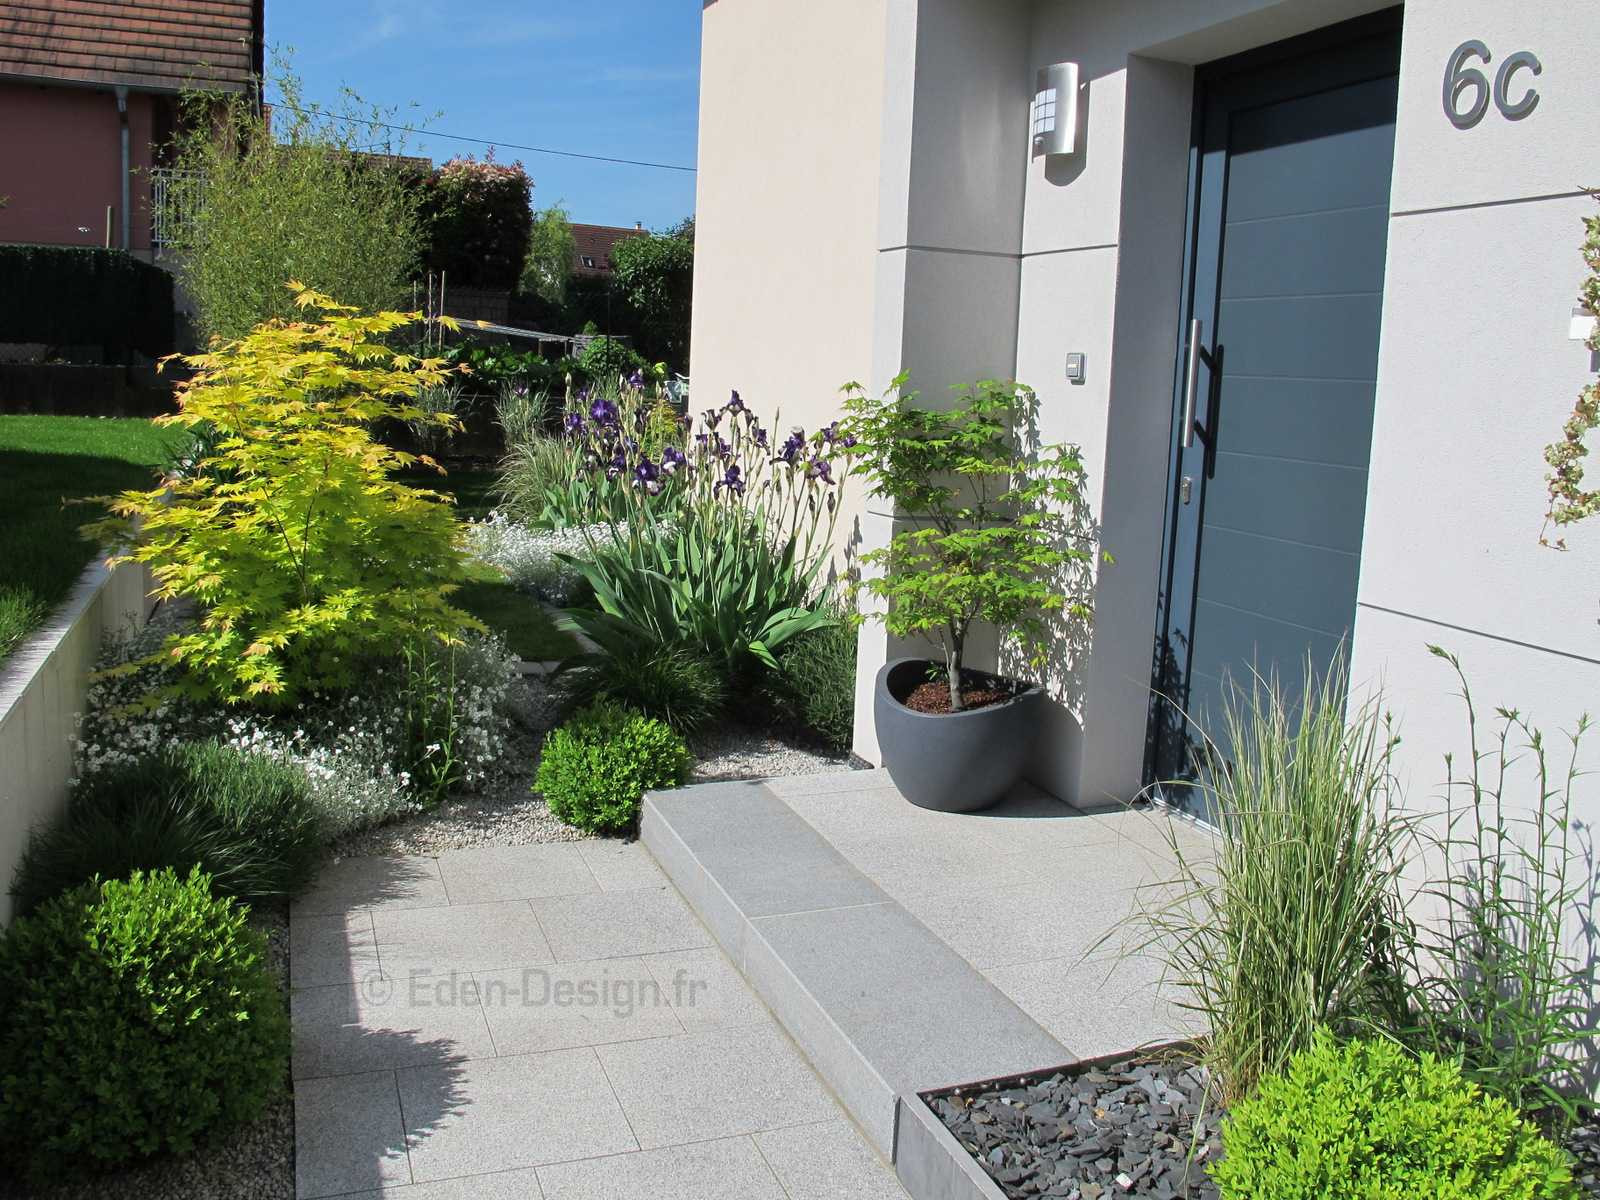 Jardin Paysager Exemple Beau Idee Amenagement Jardin Devant Maison – Gamboahinestrosa Of 78 Luxe Jardin Paysager Exemple